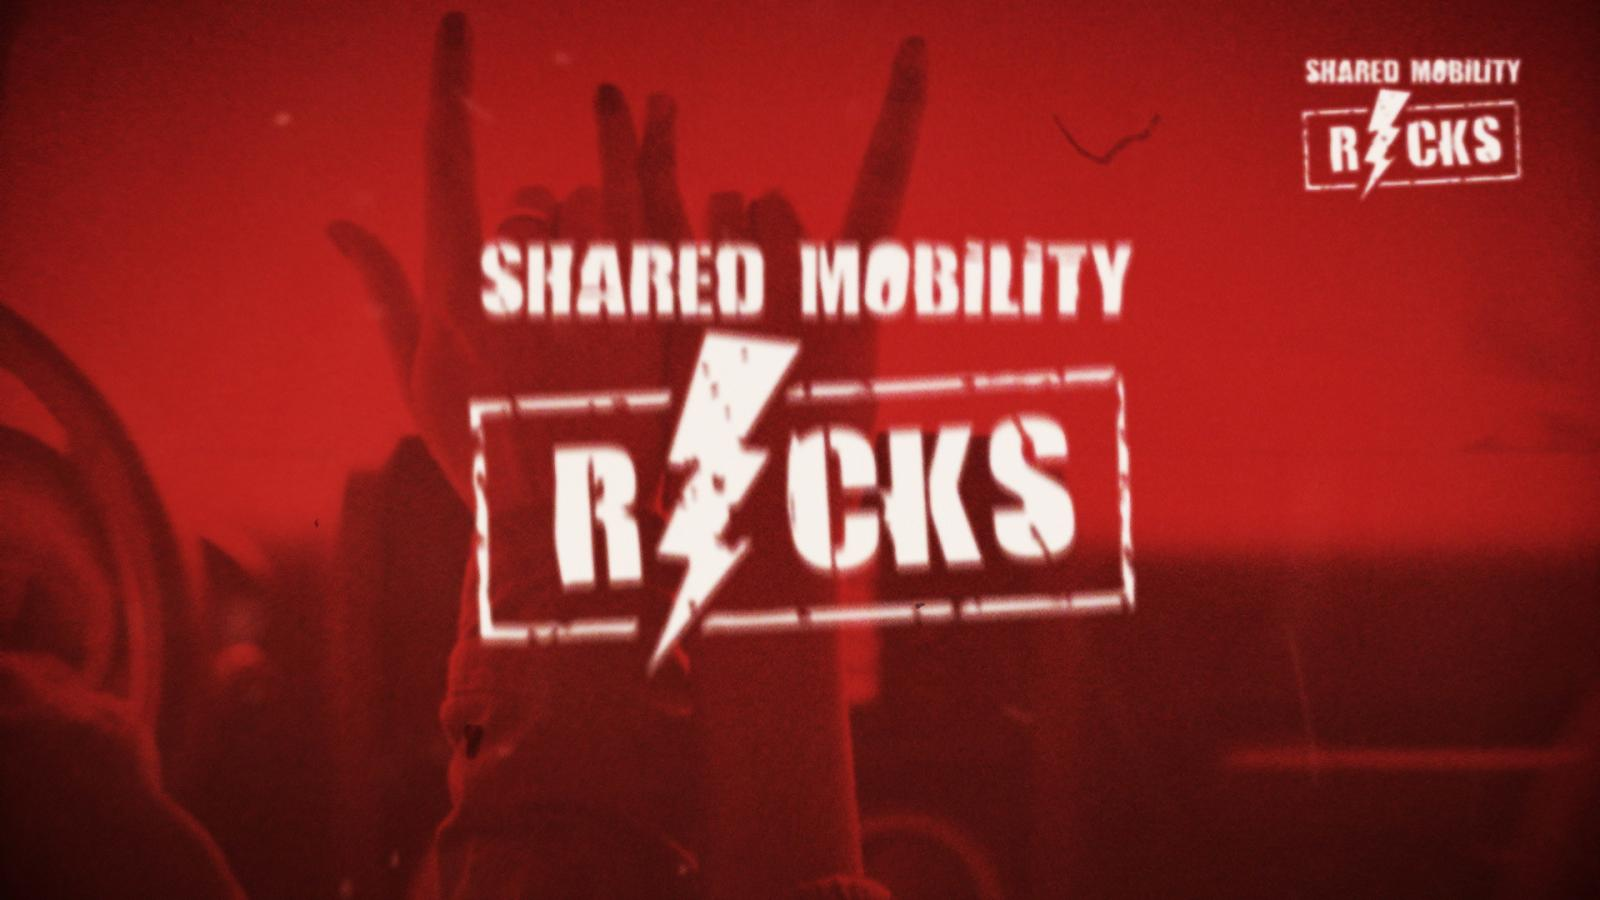 teaser shared mobility rocks